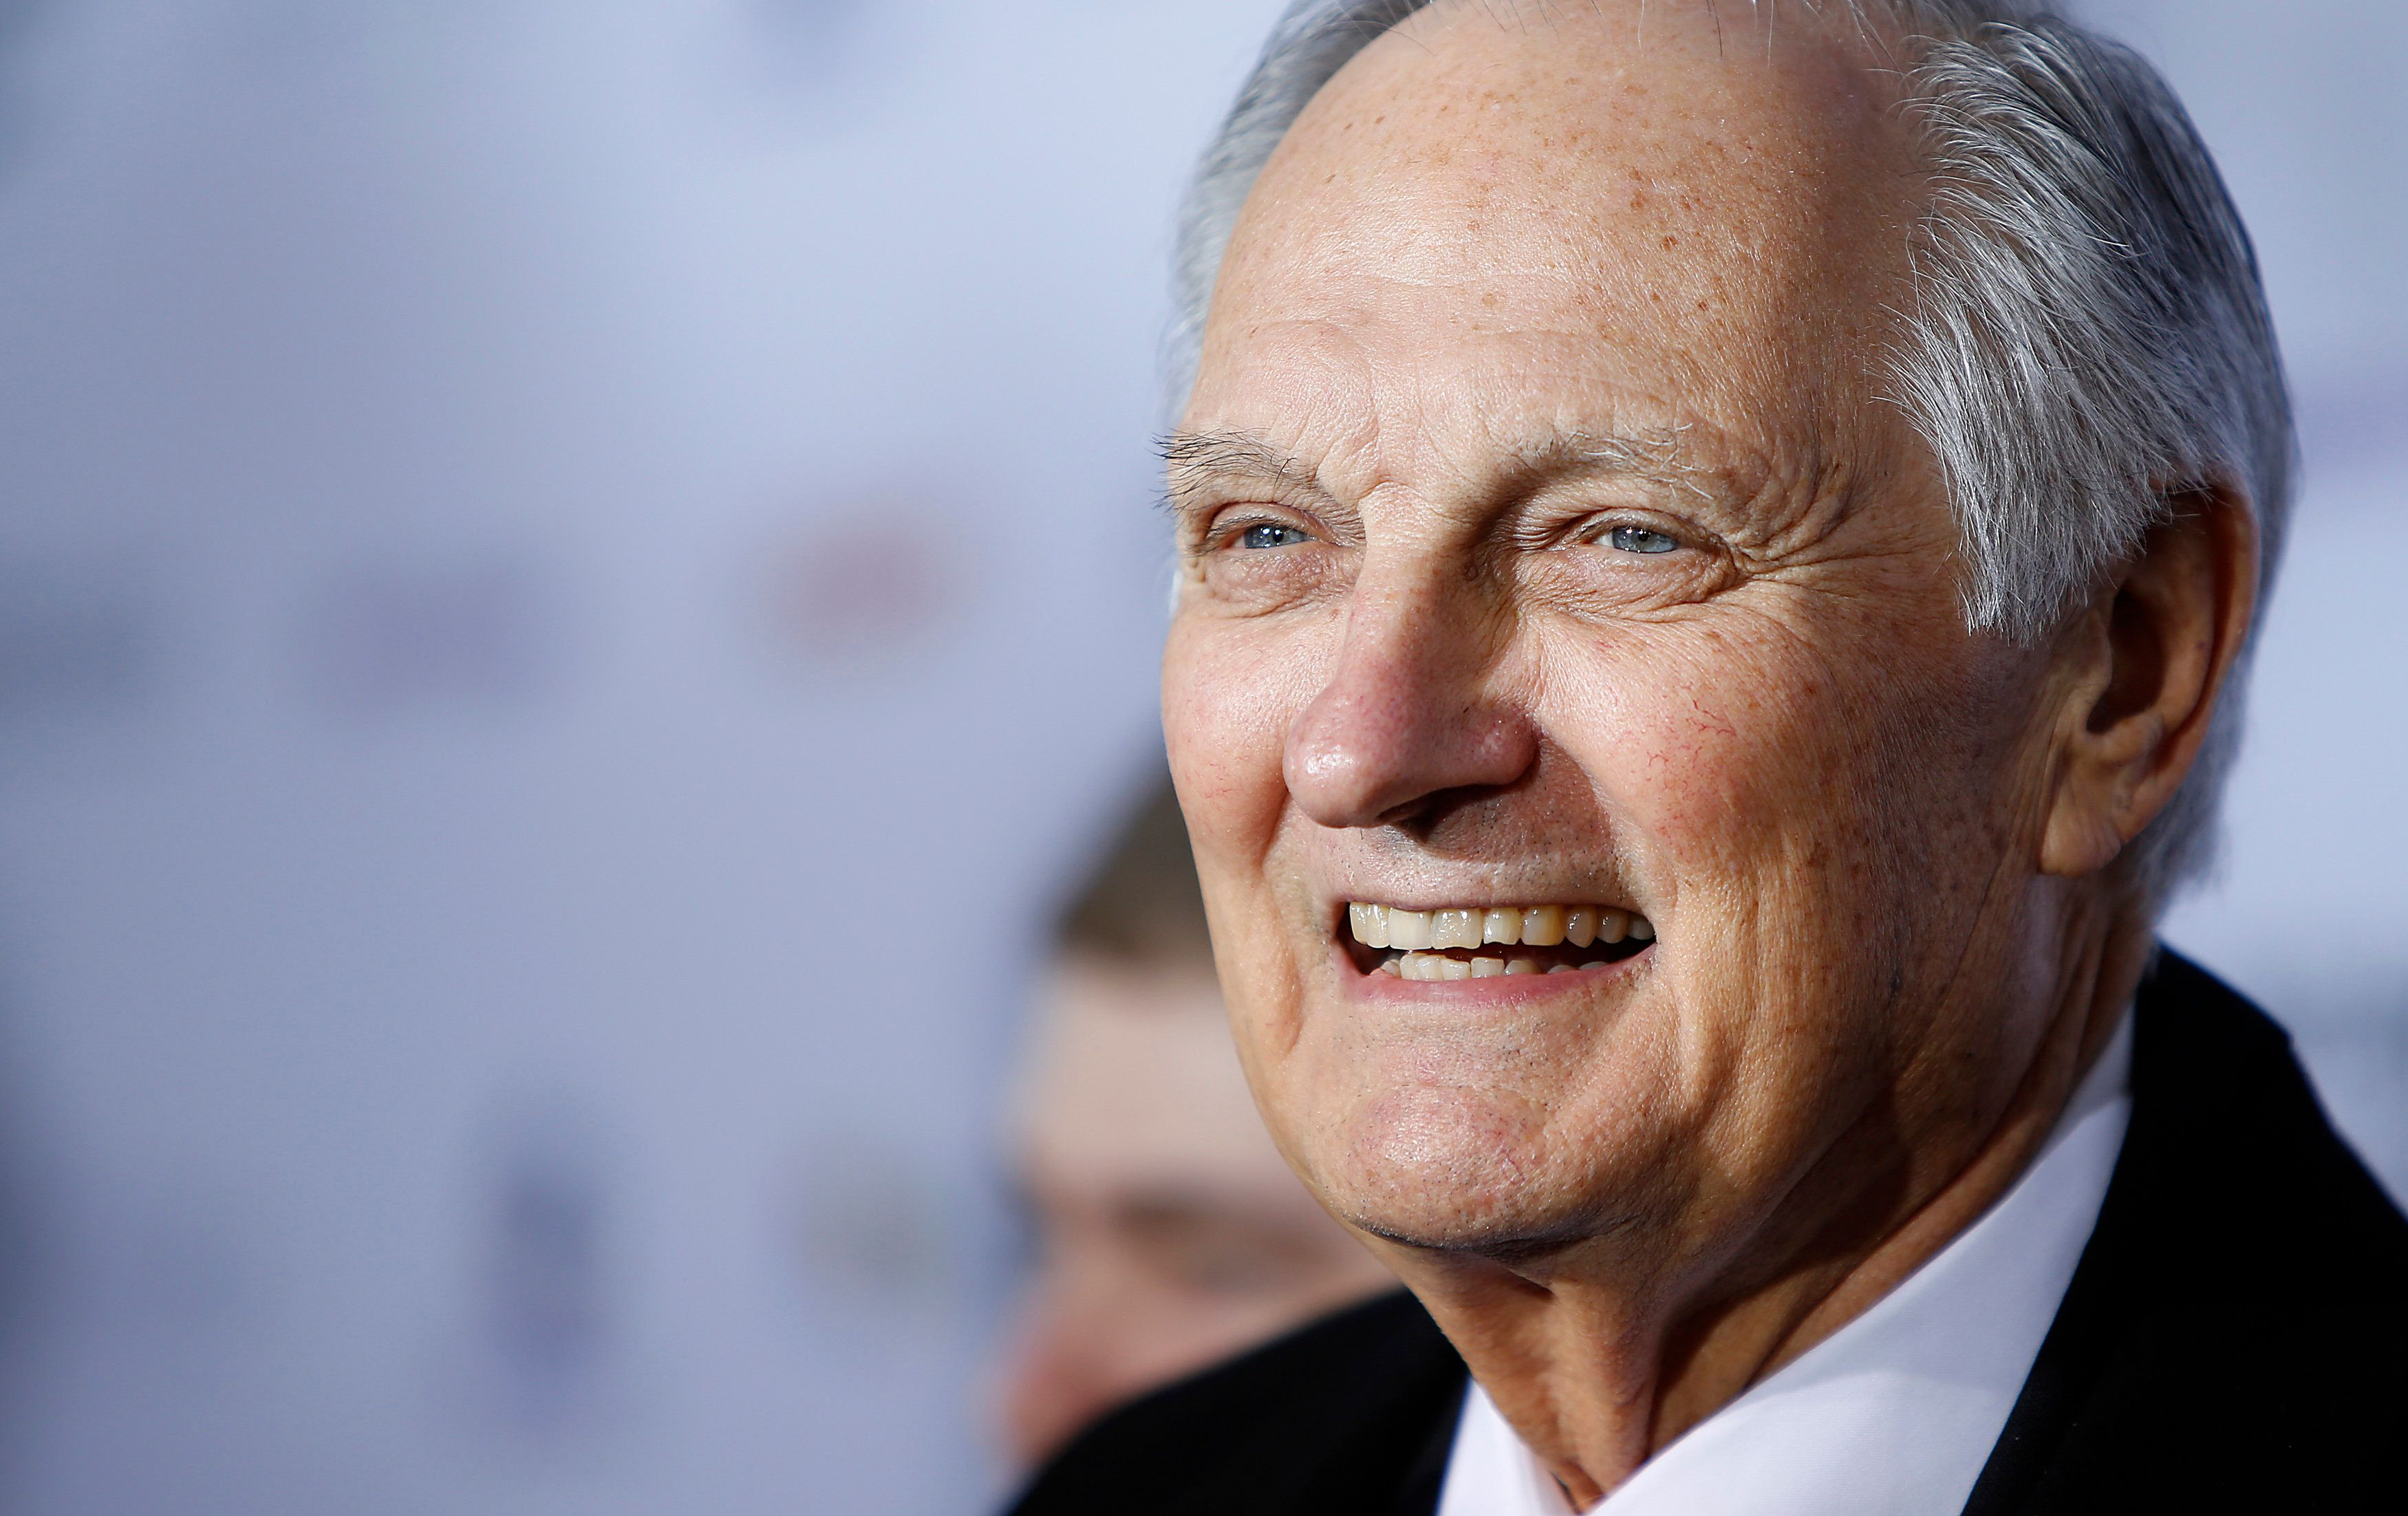 Actor Alan Alda arrives for the International Emmy Awards in New York, November 19, 2012.   REUTERS/Carlo Allegri  (UNITED STATES - Tags: ENTERTAINMENT)